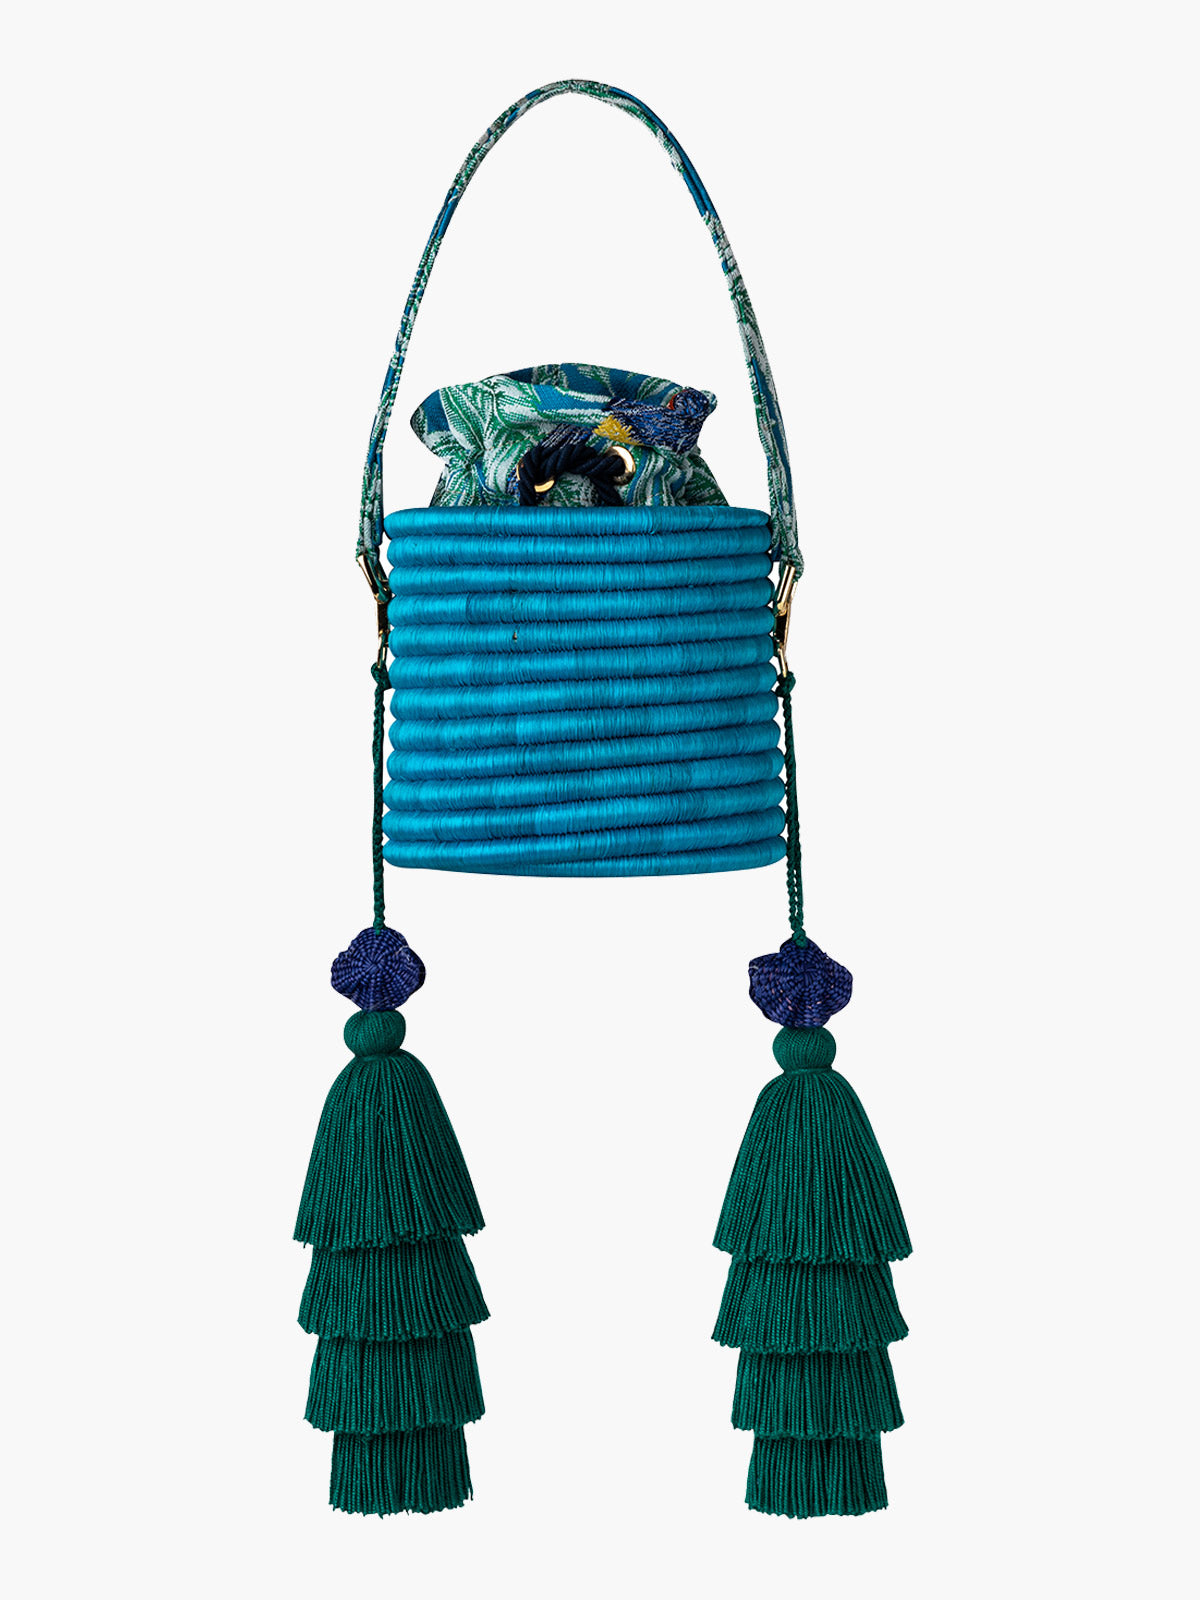 Bucket Bag | Laguna Blue Bucket Bag | Laguna Blue